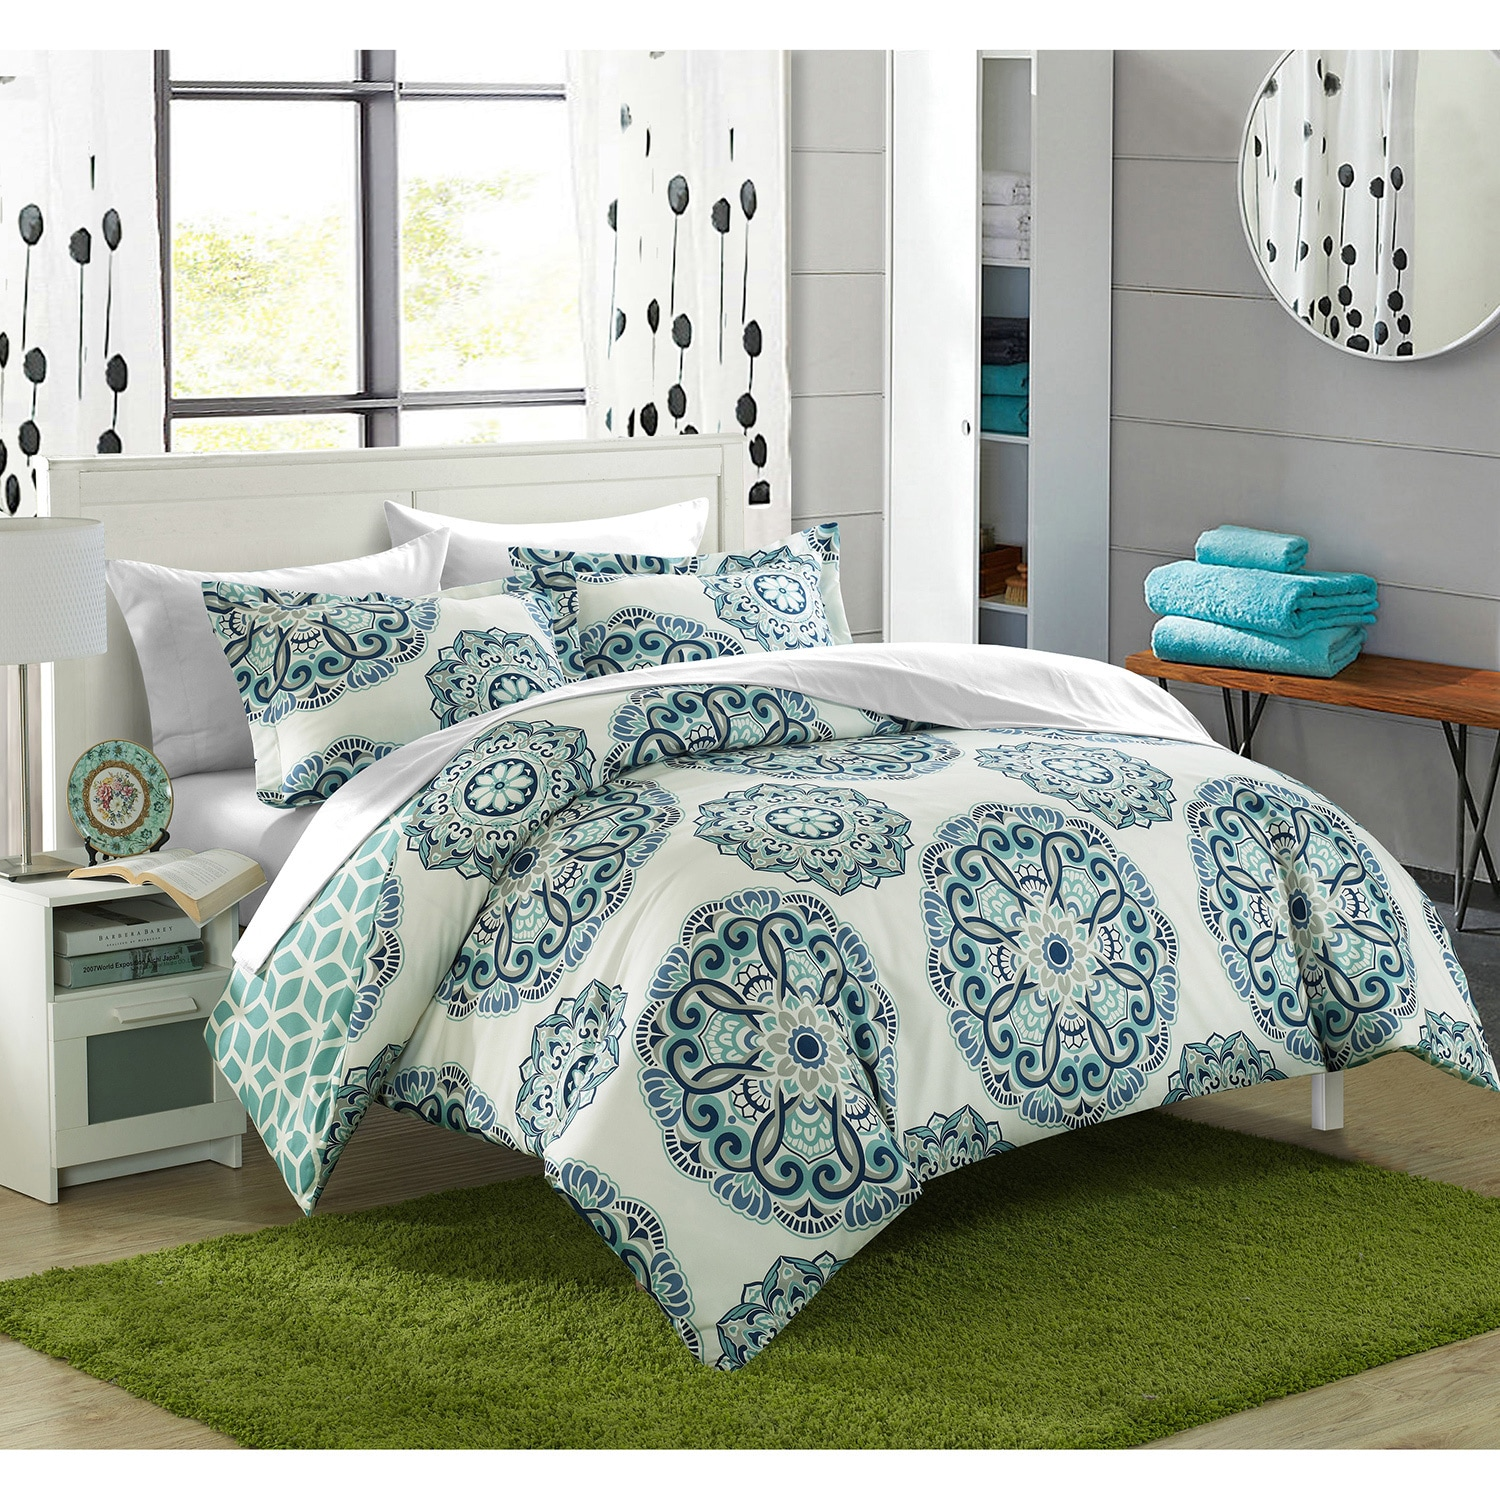 Chic Home Aragona Printed Medallion with Geometric Reverse 7-piece Bed in a Bag with White Sheet Set